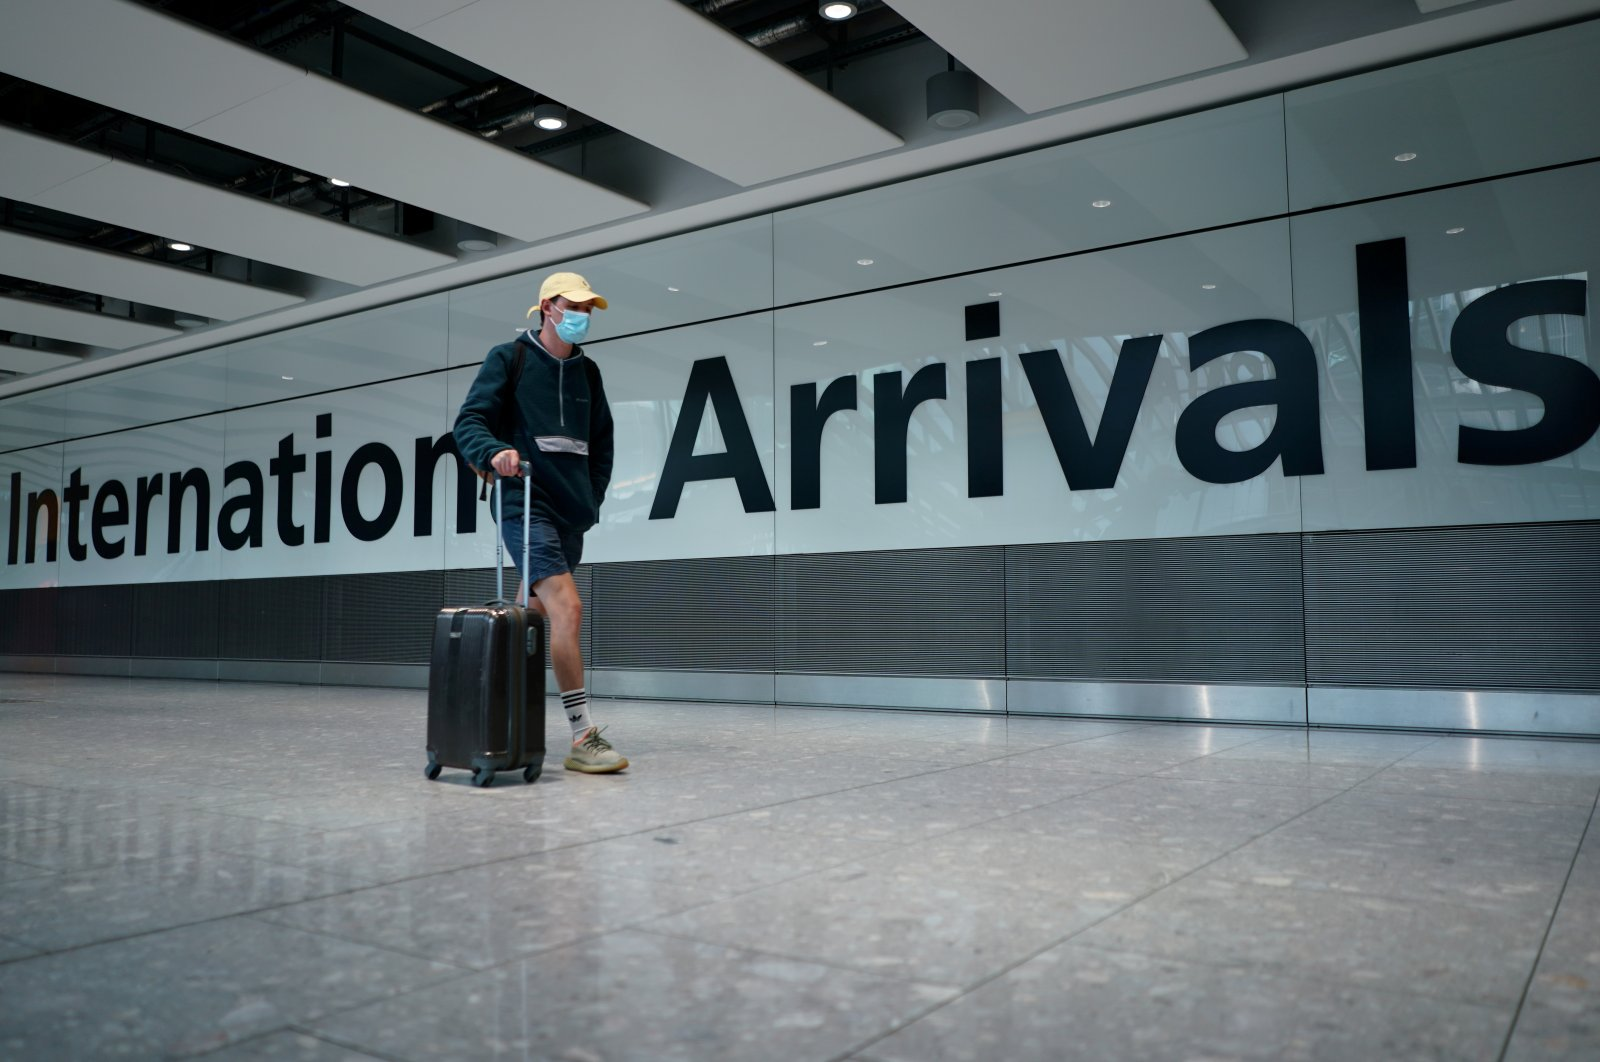 A traveler wearing a face mask walks in Terminal 5 at Heathrow Airport, as the spread of the coronavirus continues, in London, Britain, July 26, 2020. (Reuters Photo)